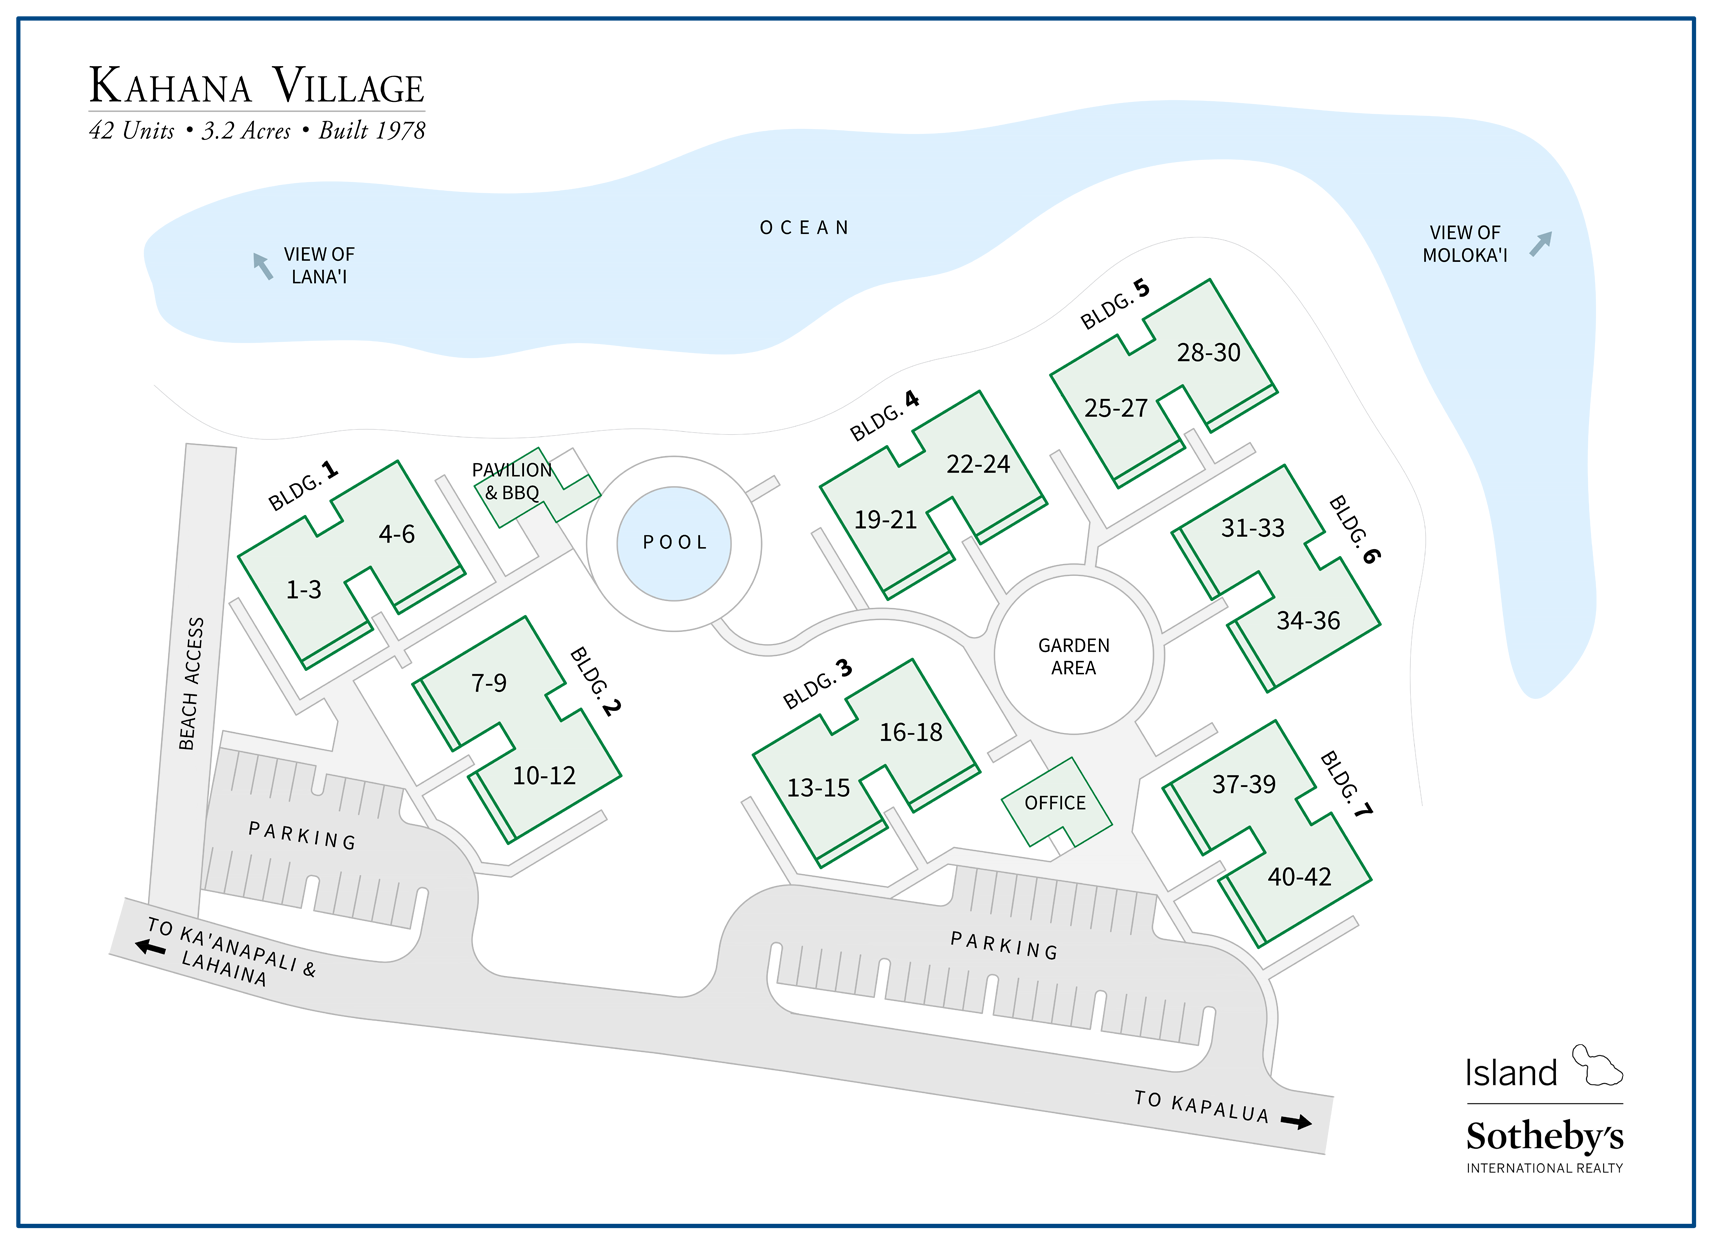 kahana village map